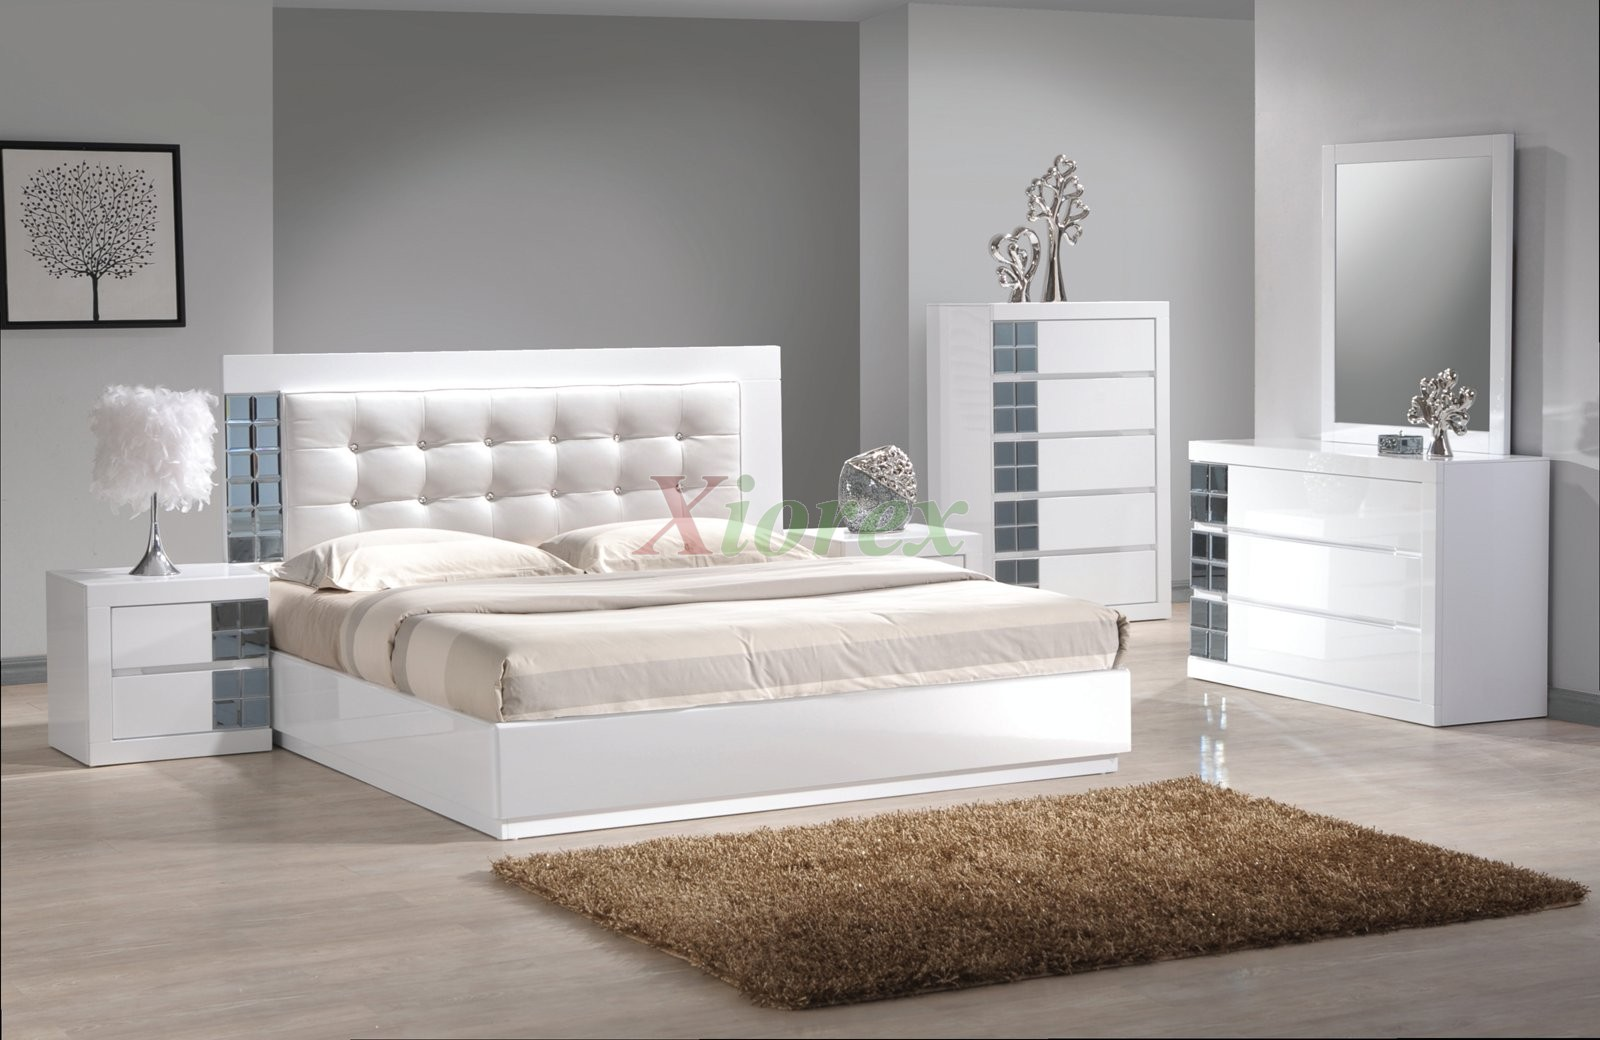 White Leather Bedroom Set Sets Online Atmosphere Ideas Bed Frame With Crystal Bedrooms Silver Marble Canopy Queen Black Apppie Org